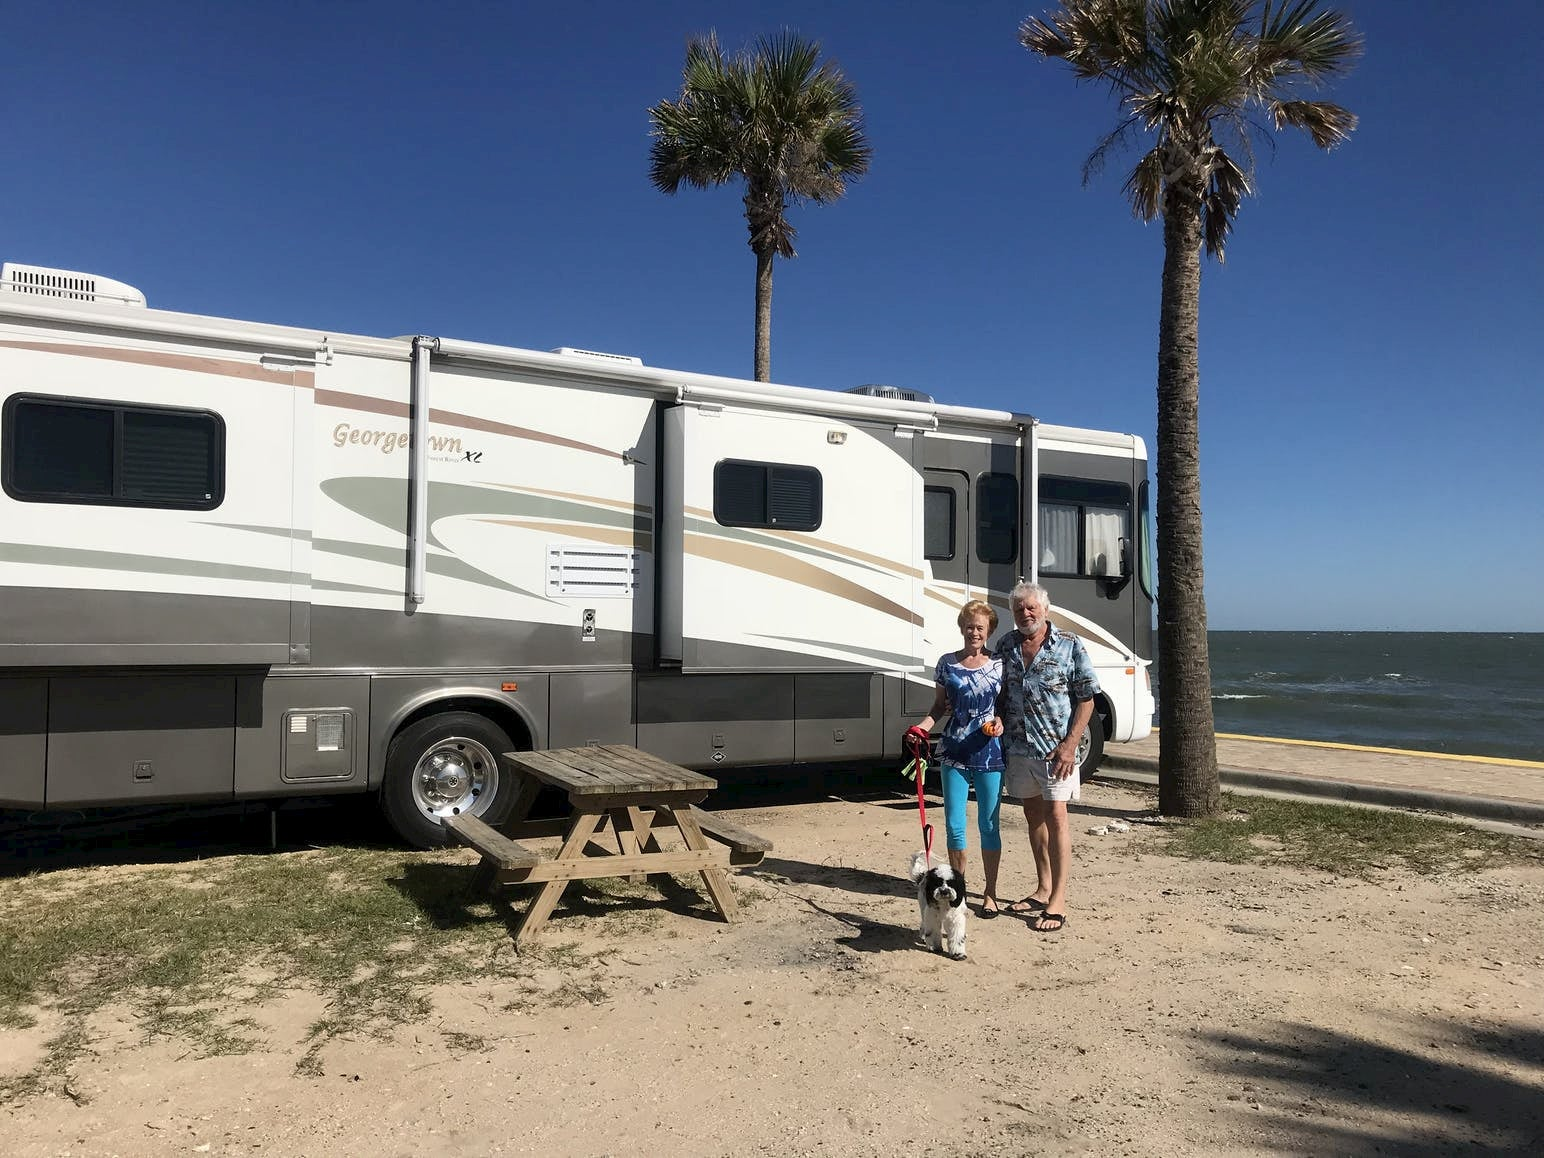 Couple and their dog pose in front of RV parked along a tropical beach.